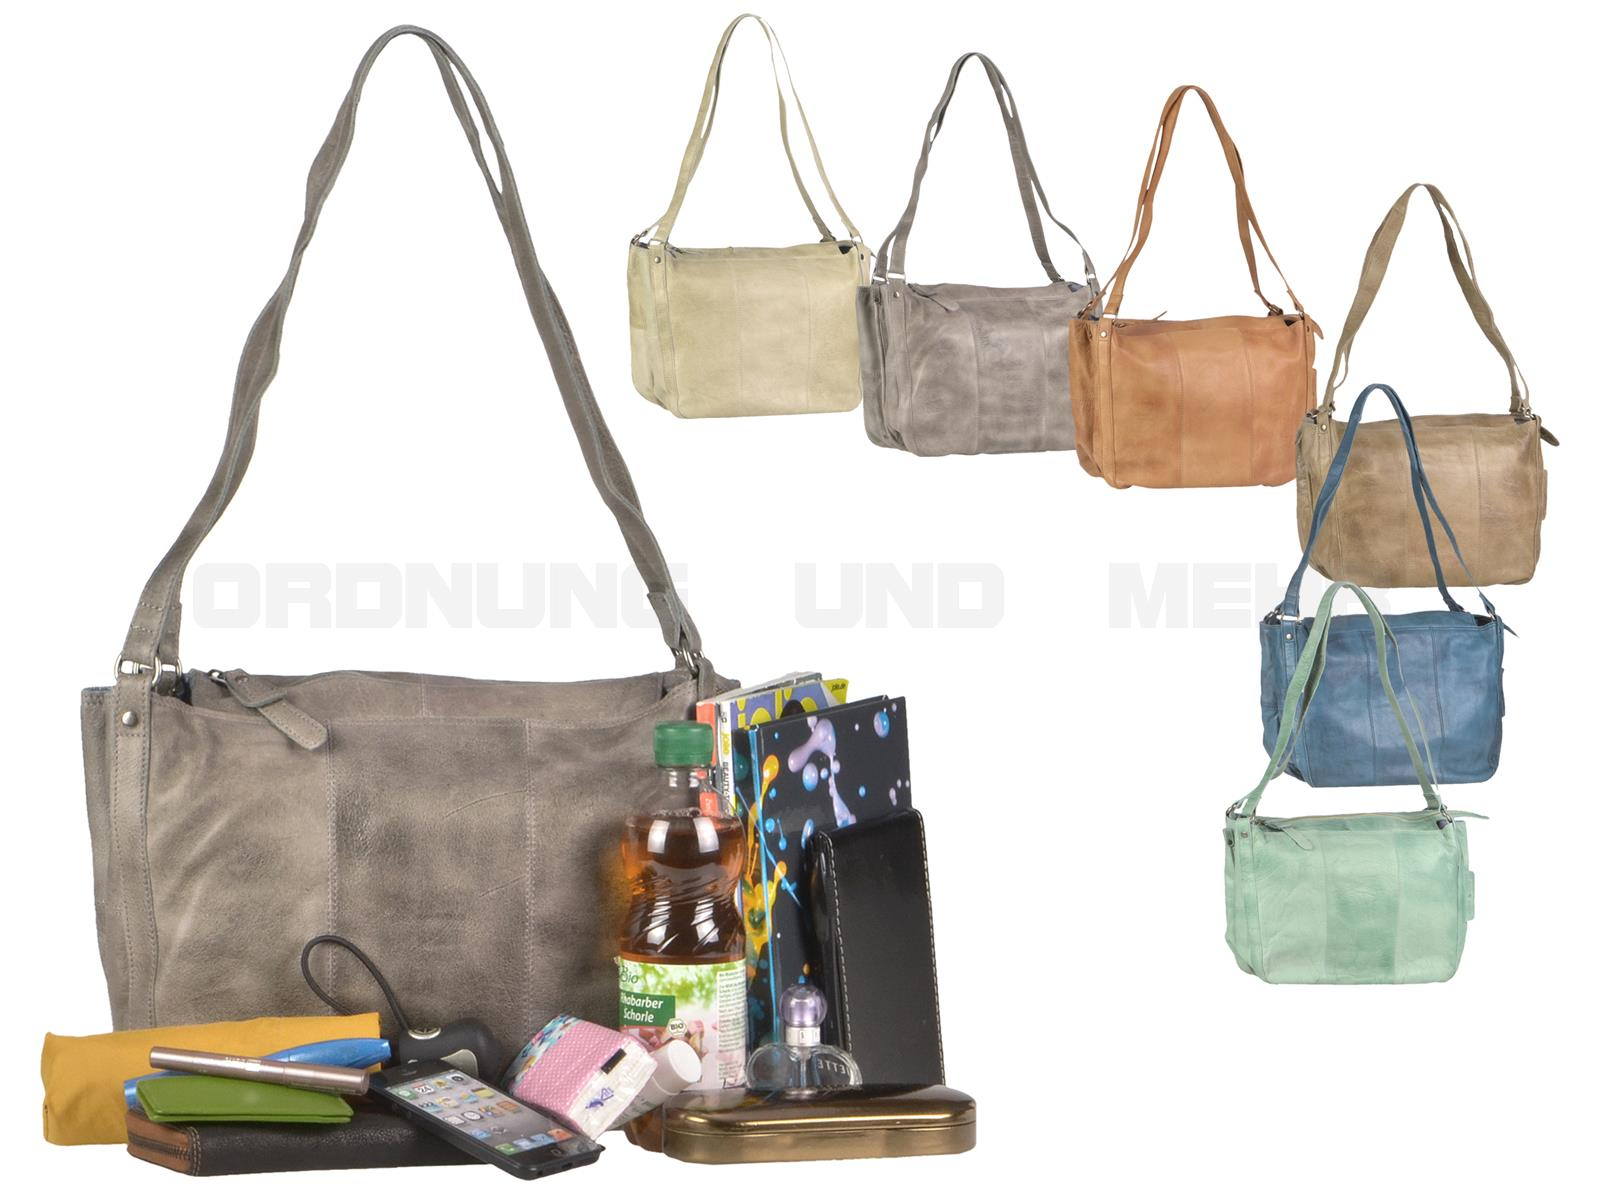 Greenburry Stainwashed Shopper GBSW-04